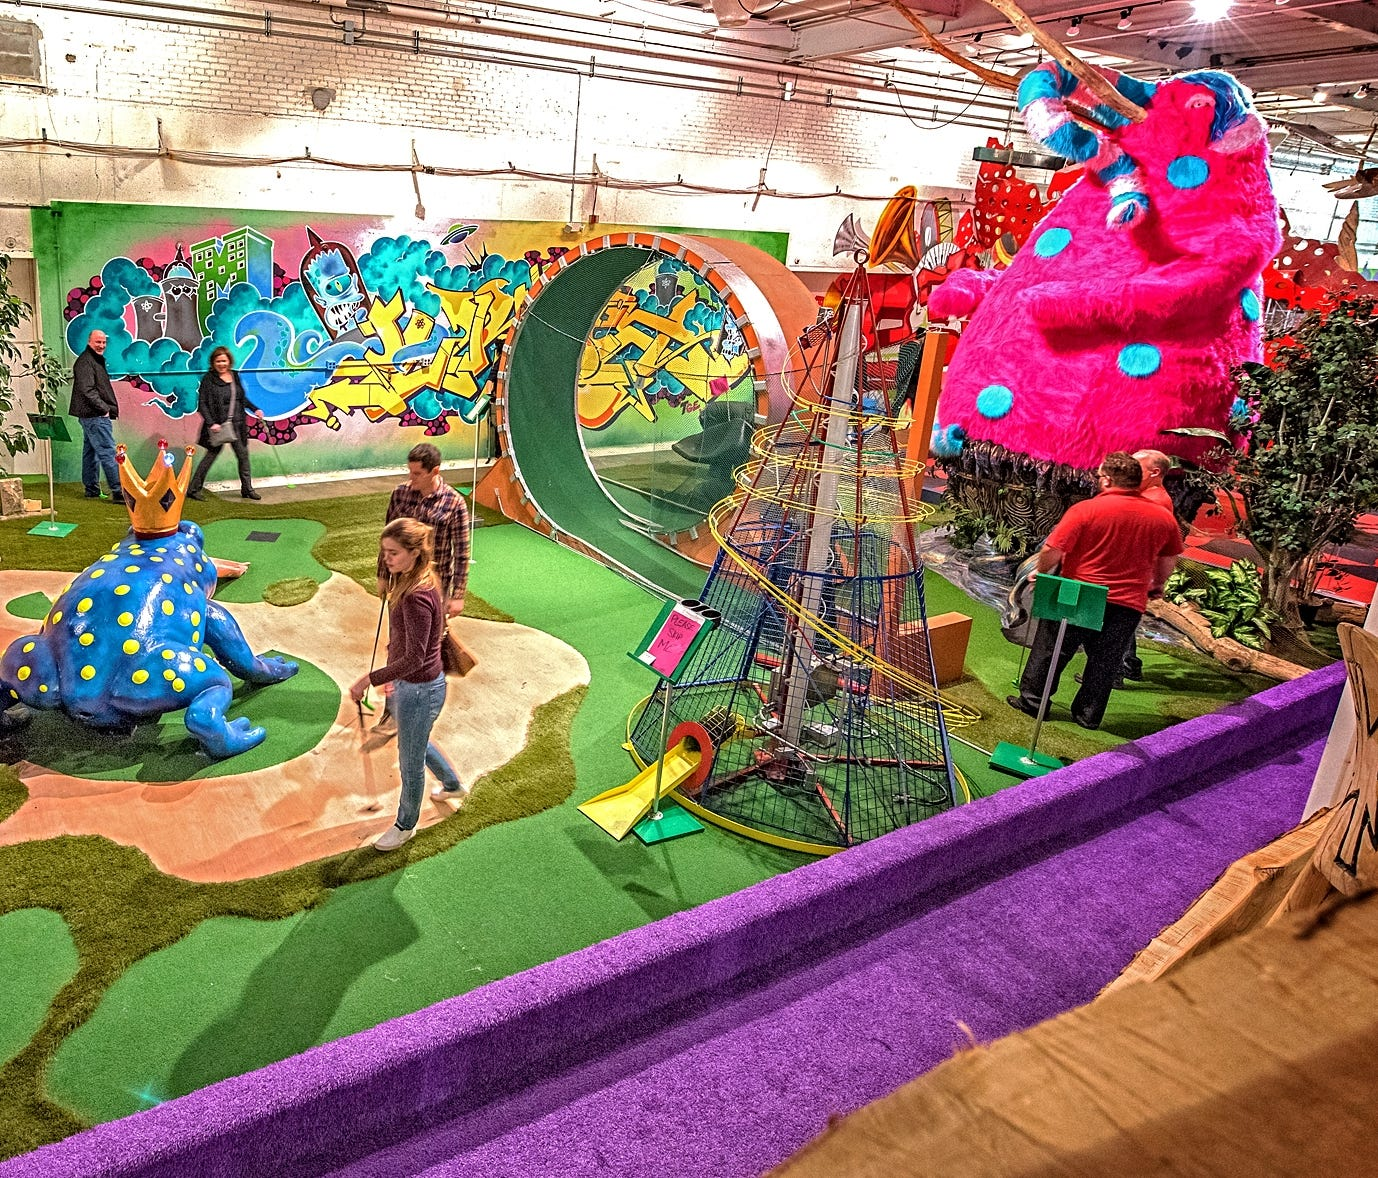 The colorful, 18-hole, artist-designed mini golf course at Can Can Wonderland in St. Paul, Minnesota.